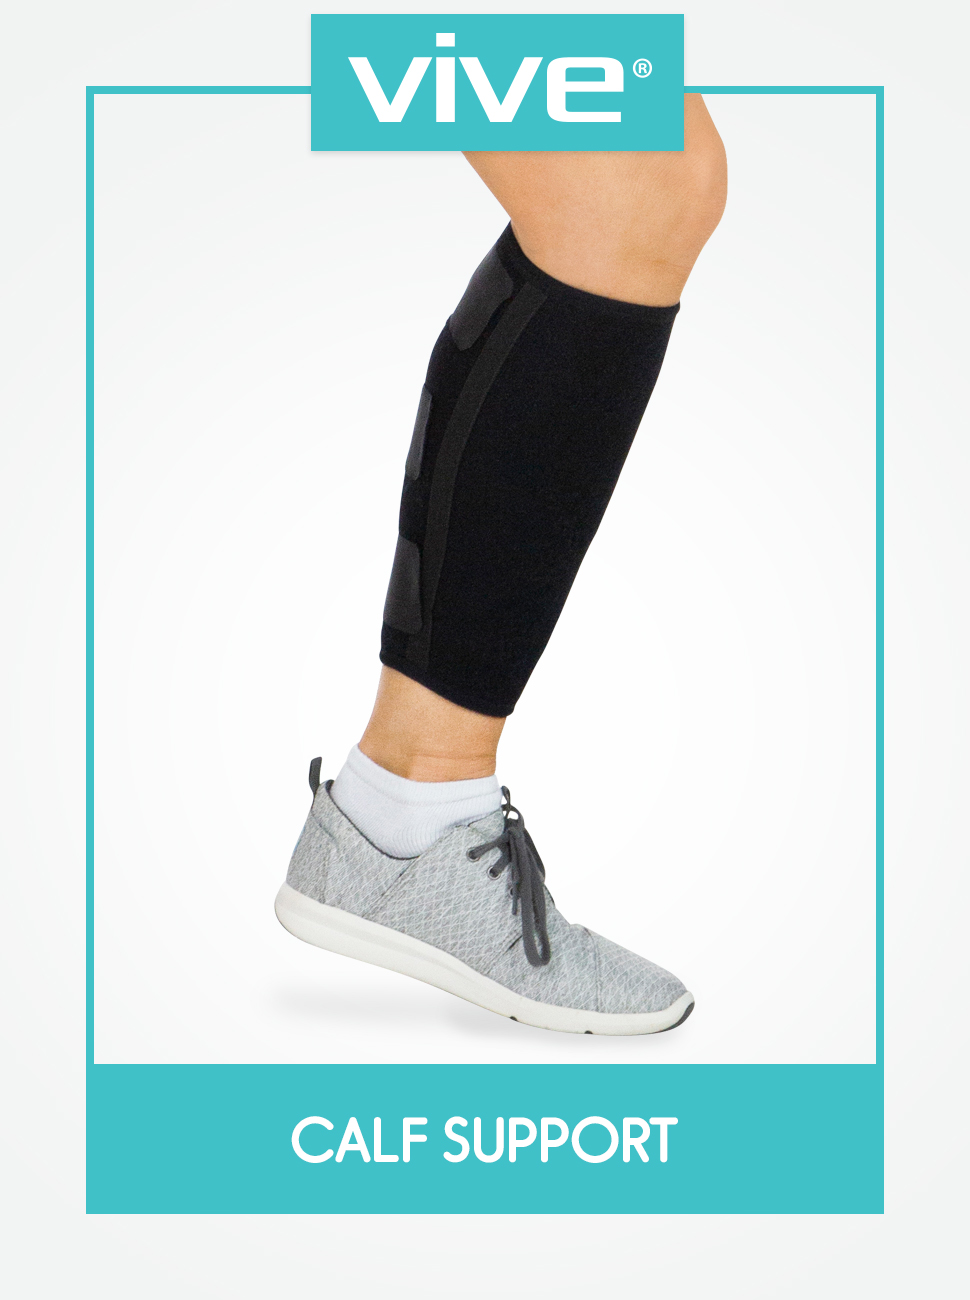 Calf Brace - Adjustable Shin Splint Support - Lower Leg Compression Wrap Increases Circulation